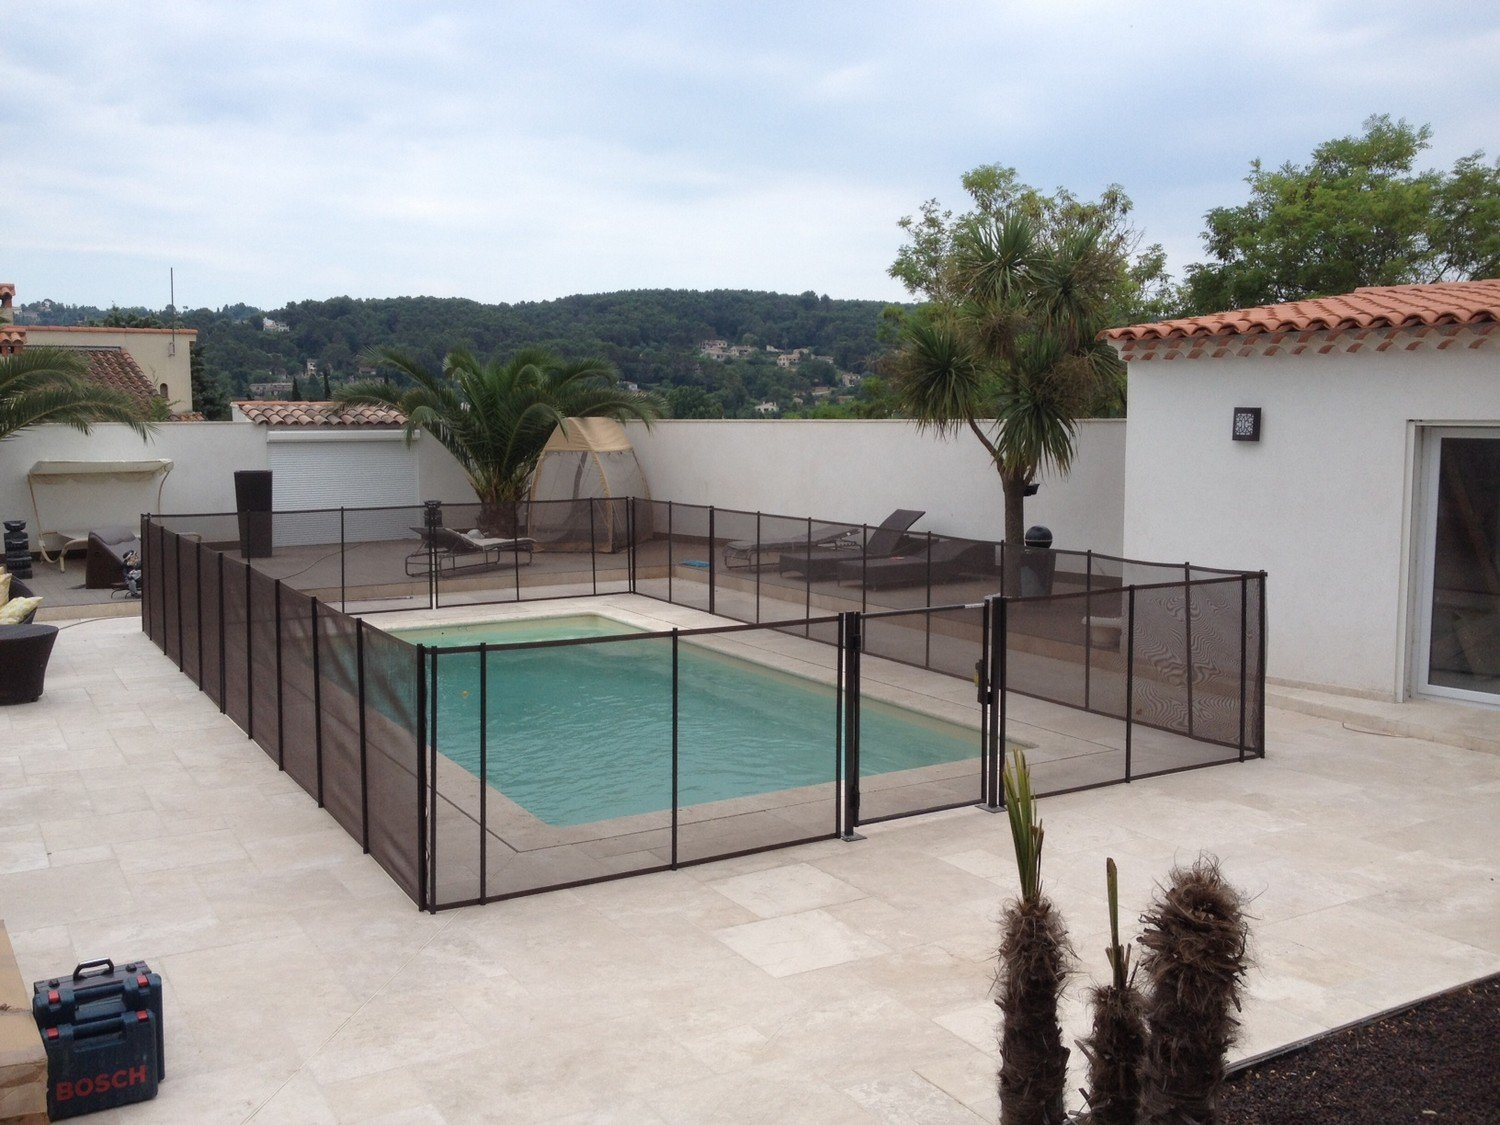 barriere de securite piscine la beethoven With barriere de securite piscine beethoven